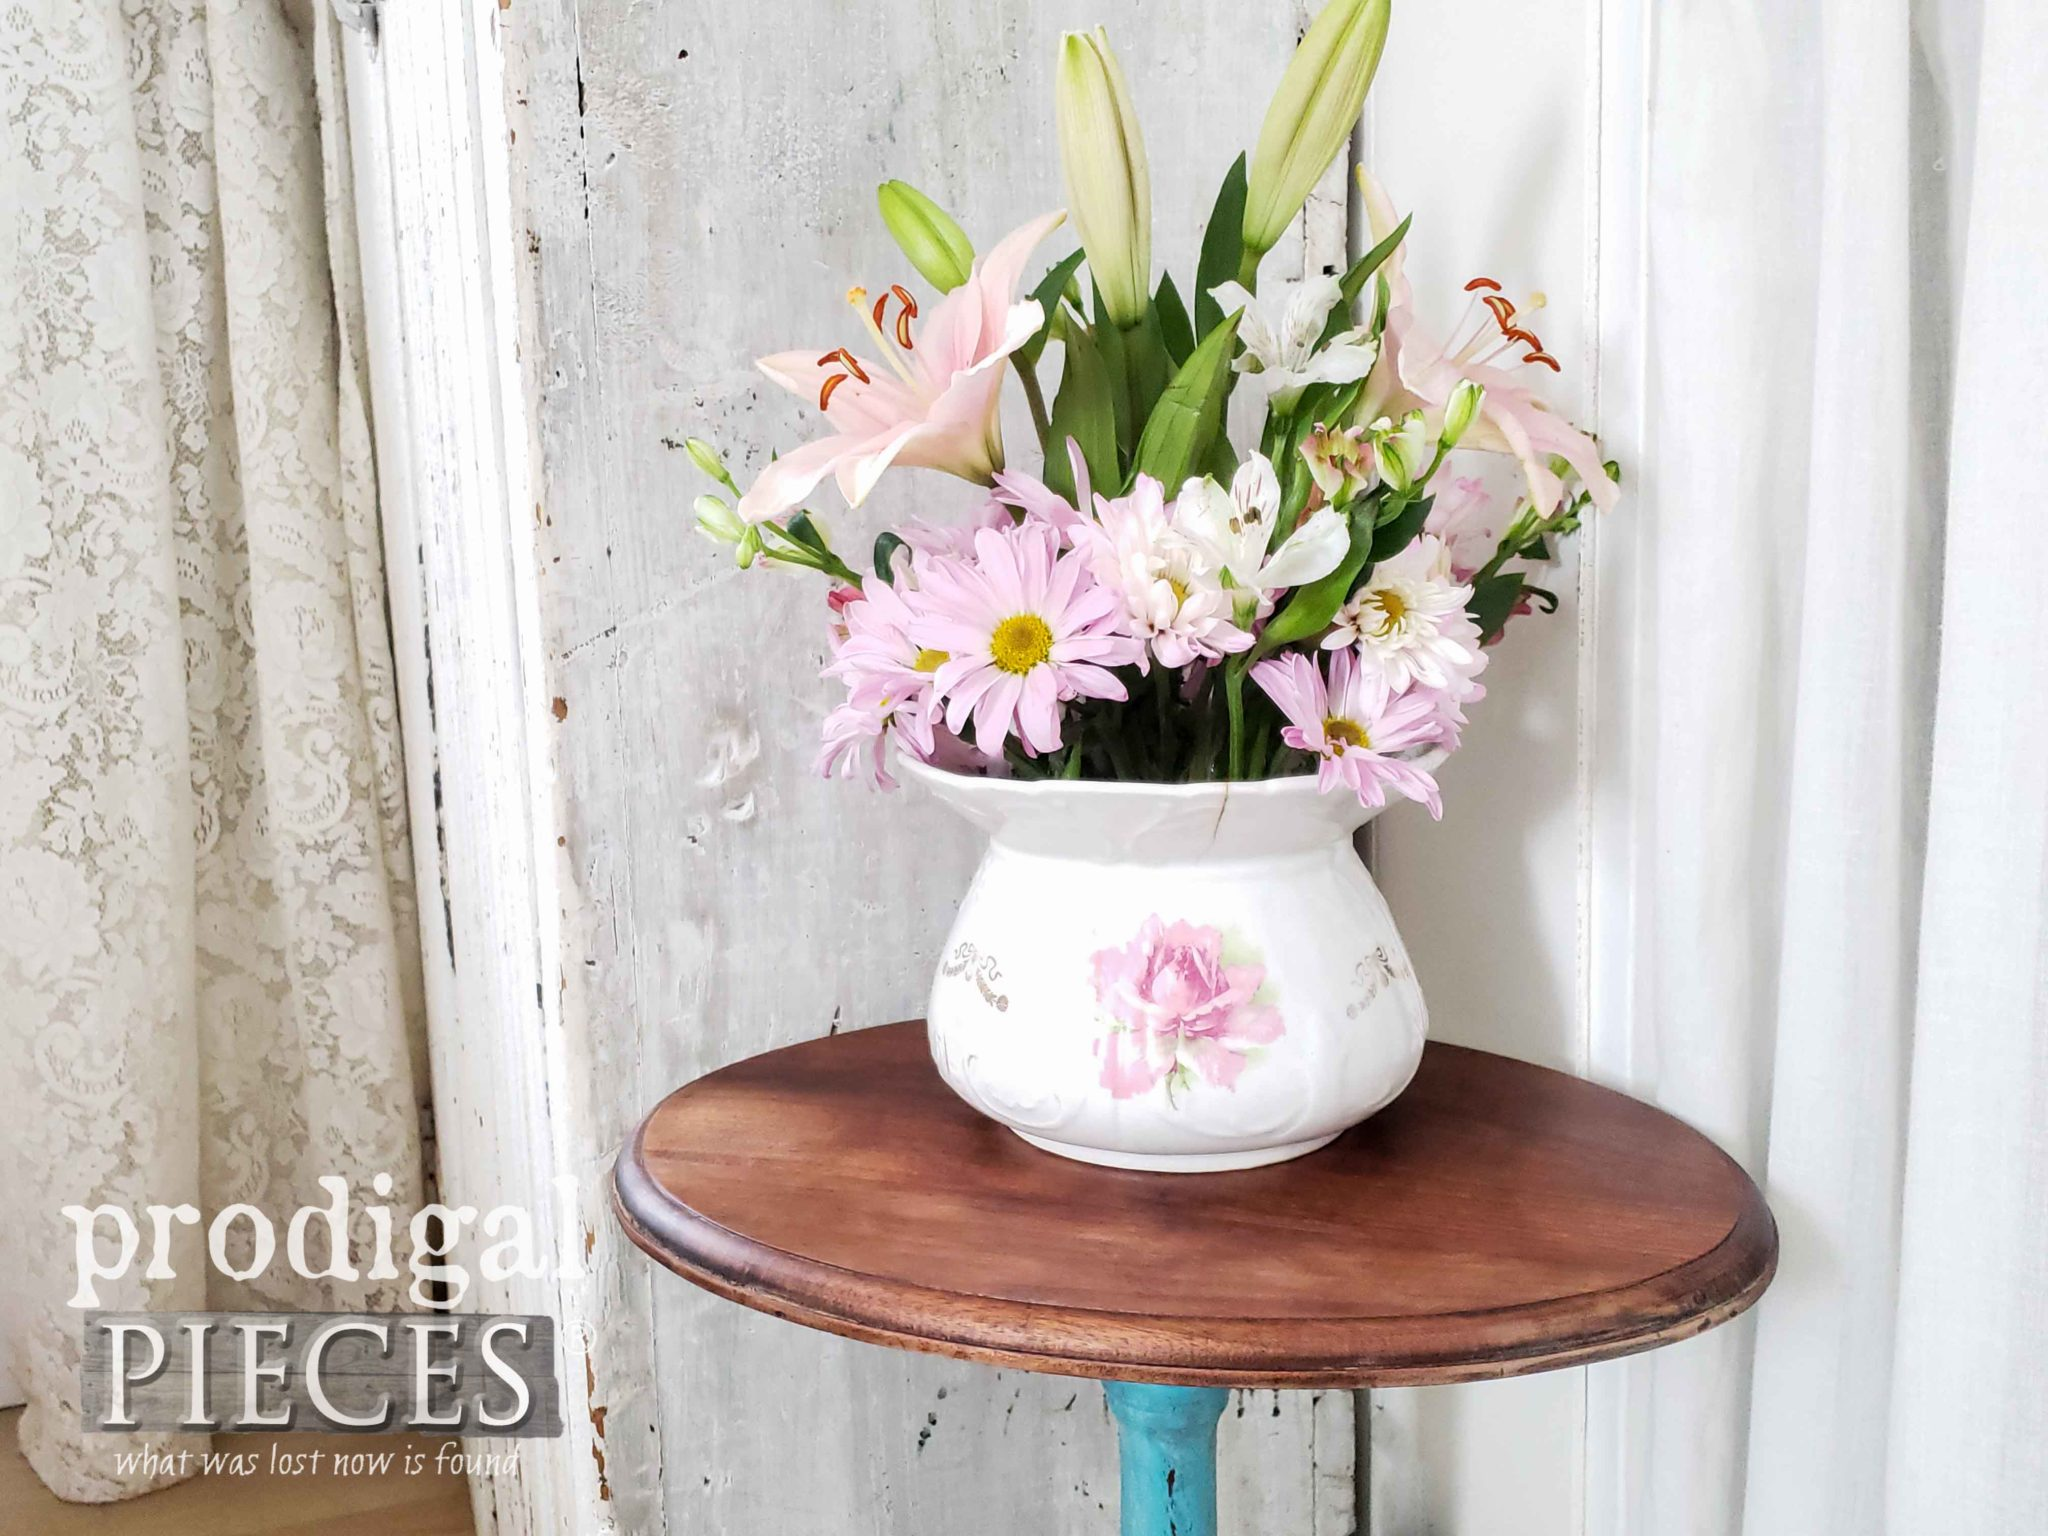 Fresh Flower Bouquet for Farmhouse Decor by Larissa of Prodigal Pieces | prodigalpieces.com #prodigalpieces #flowers #home #farmhouse #homedecor #diy #homedecorideas